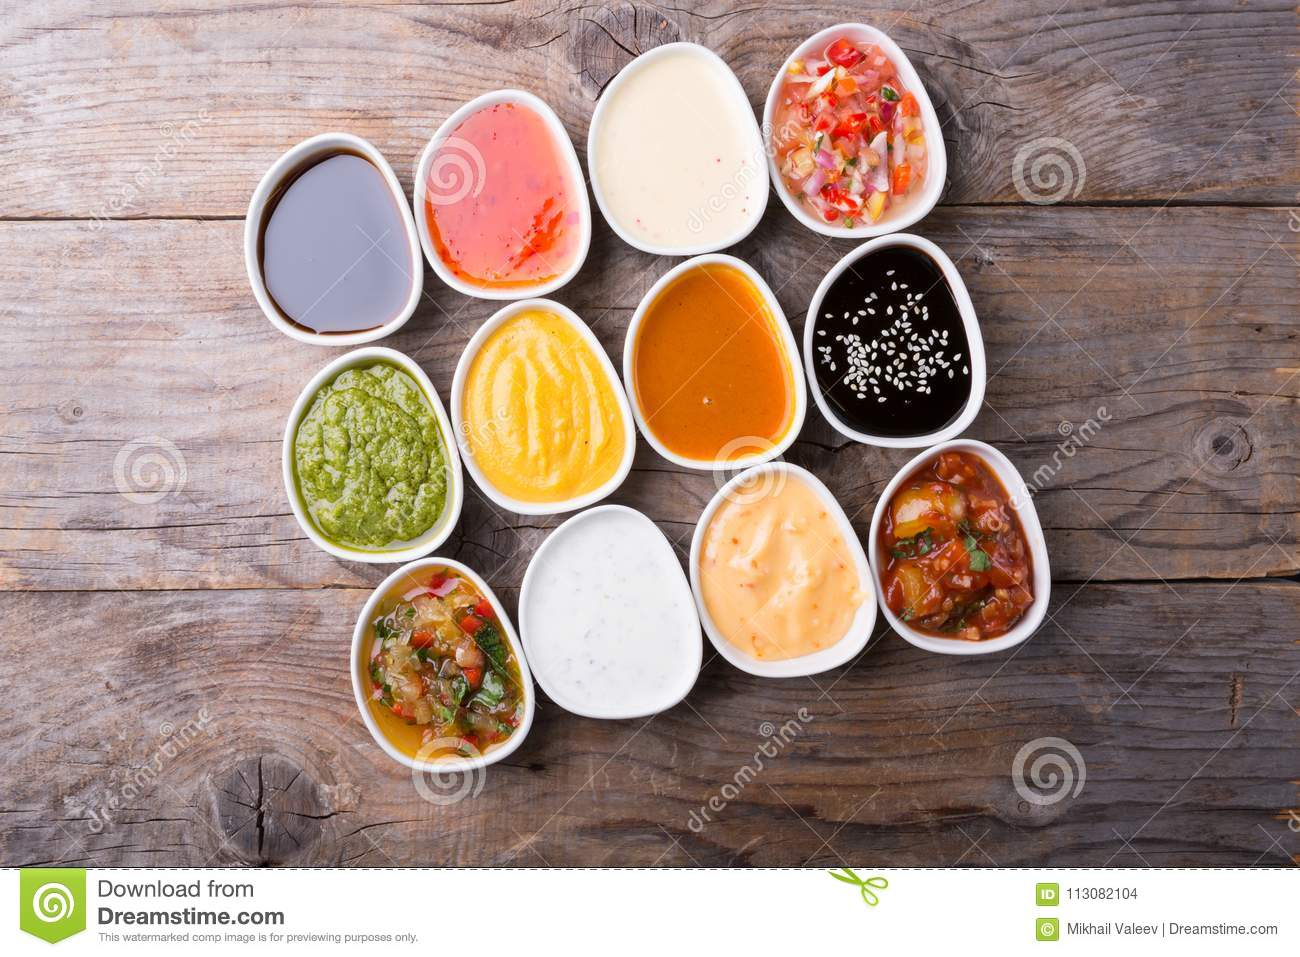 What kind of sauce was served in the cottage cheese casserole in childrens gardens